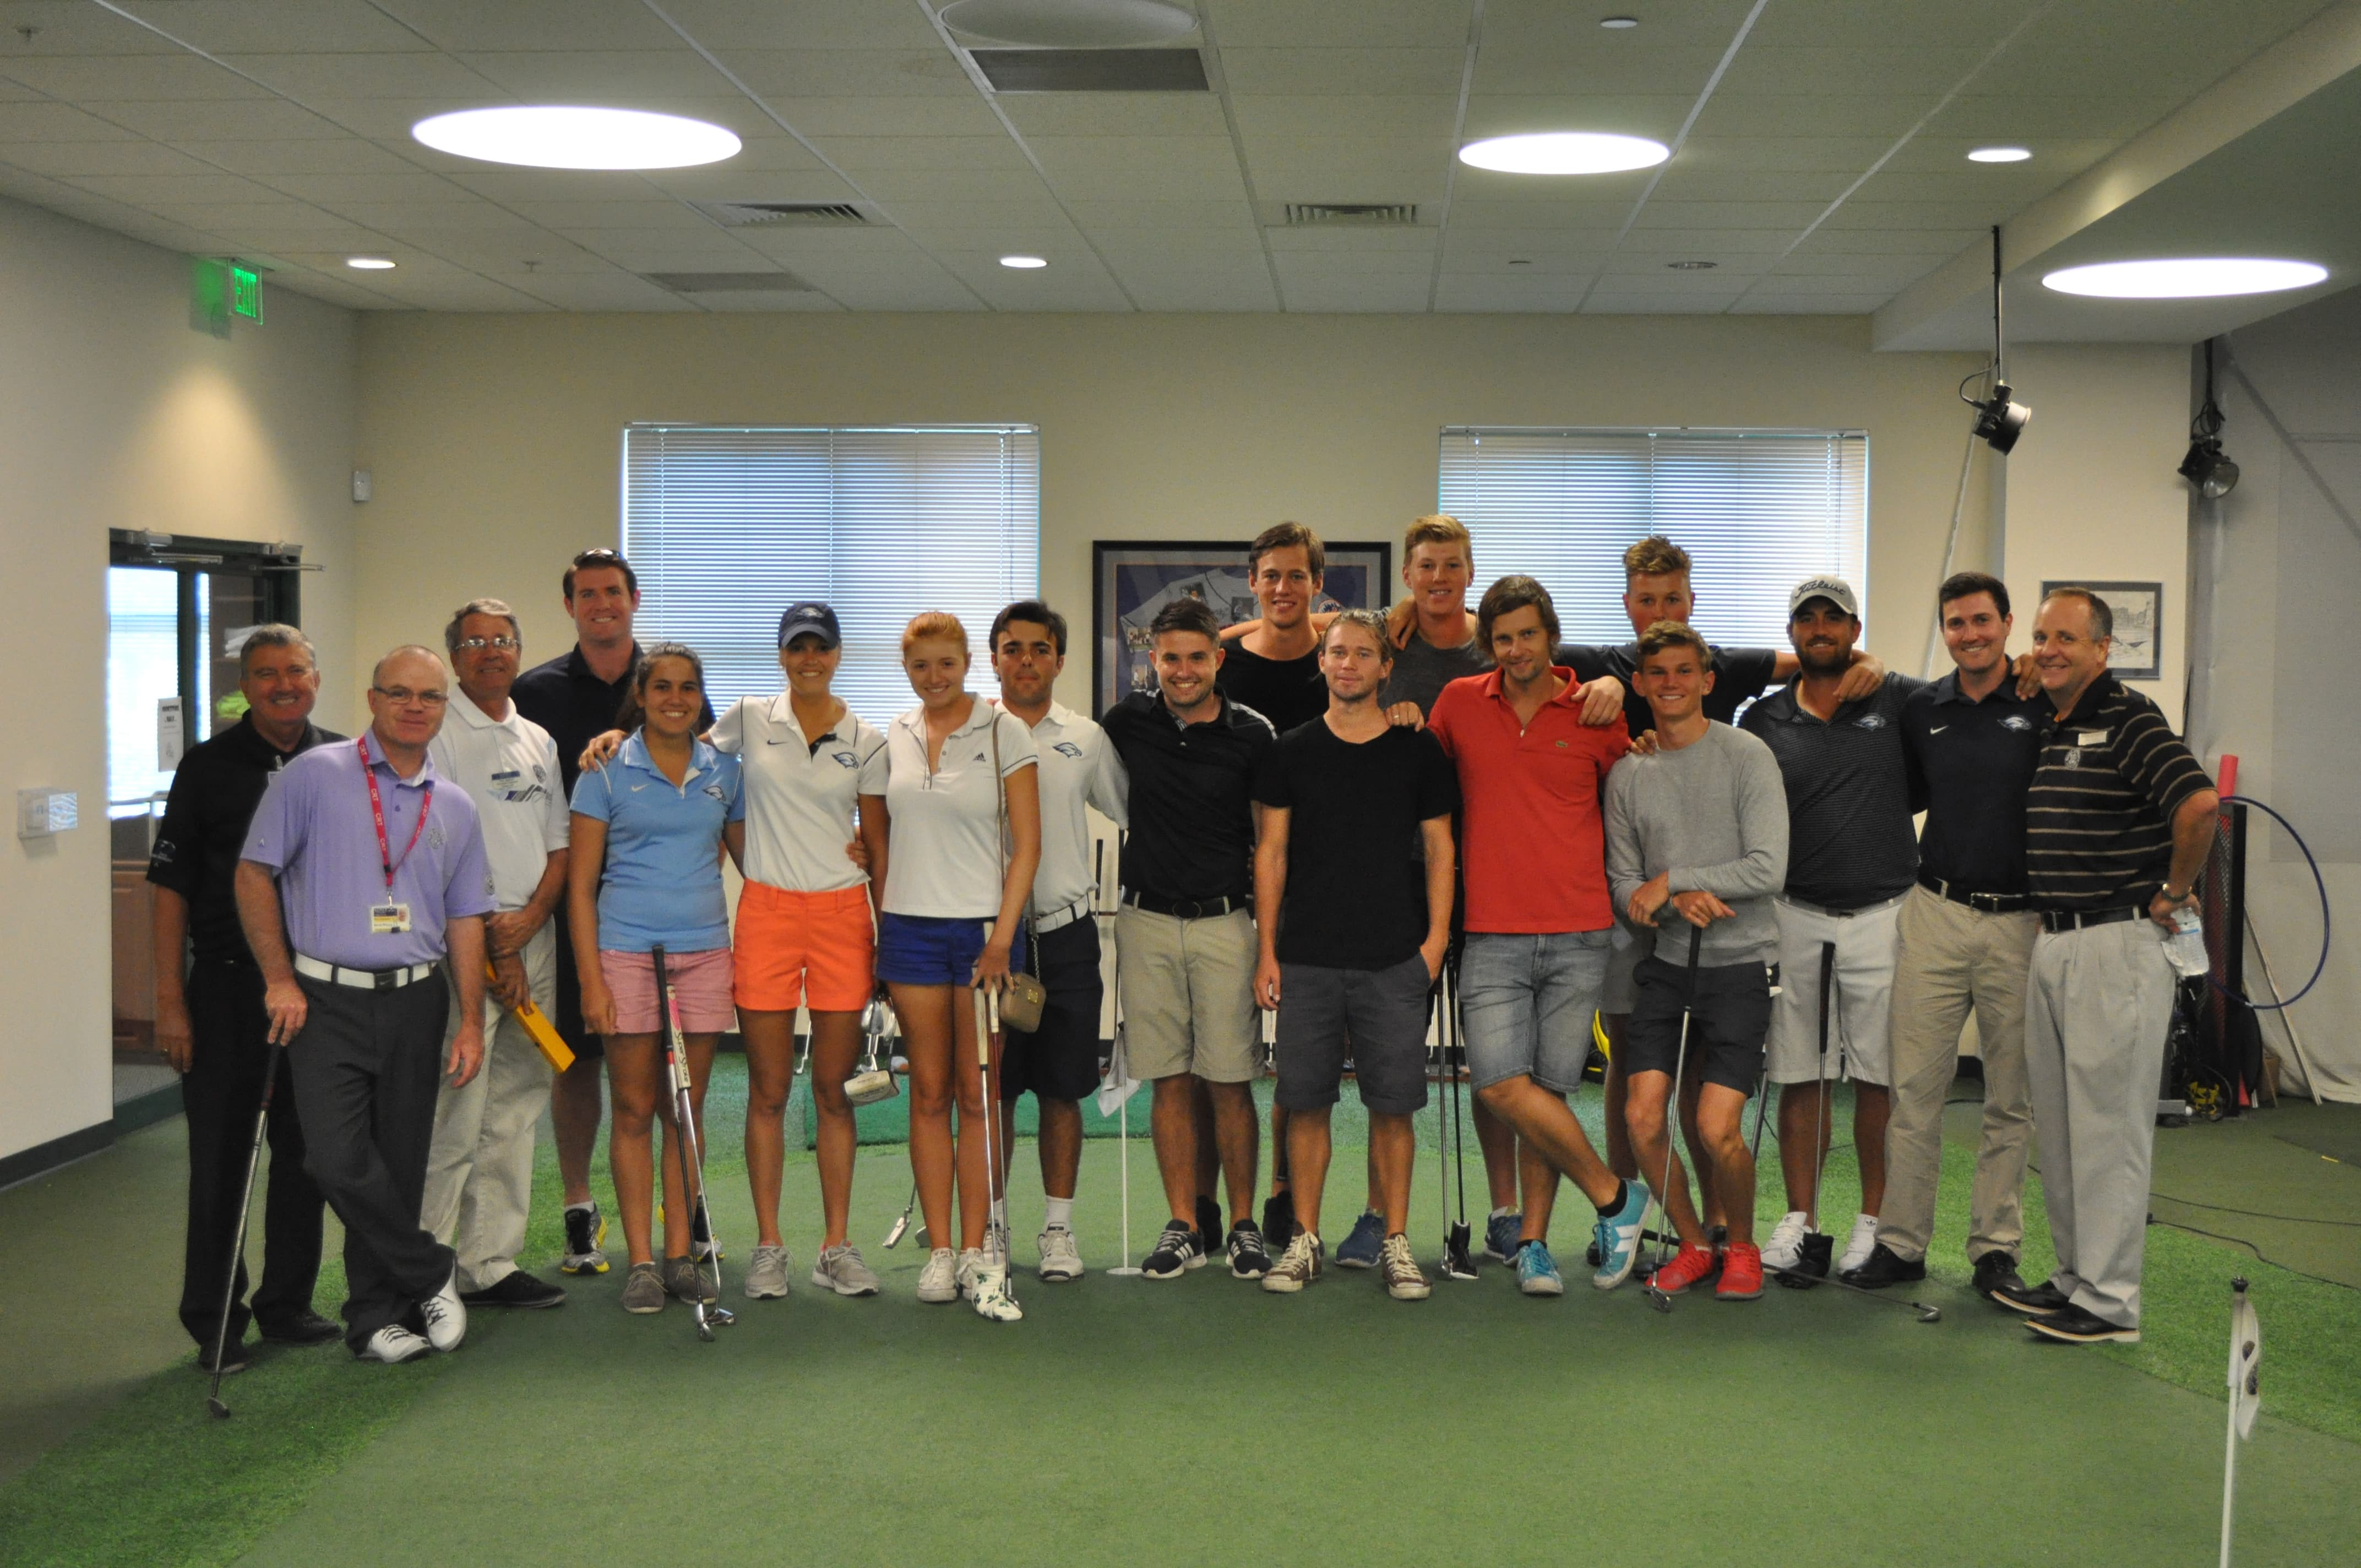 KU College of Golf and Sport Medicine is Visited by Northwood University Students on the Golf Team